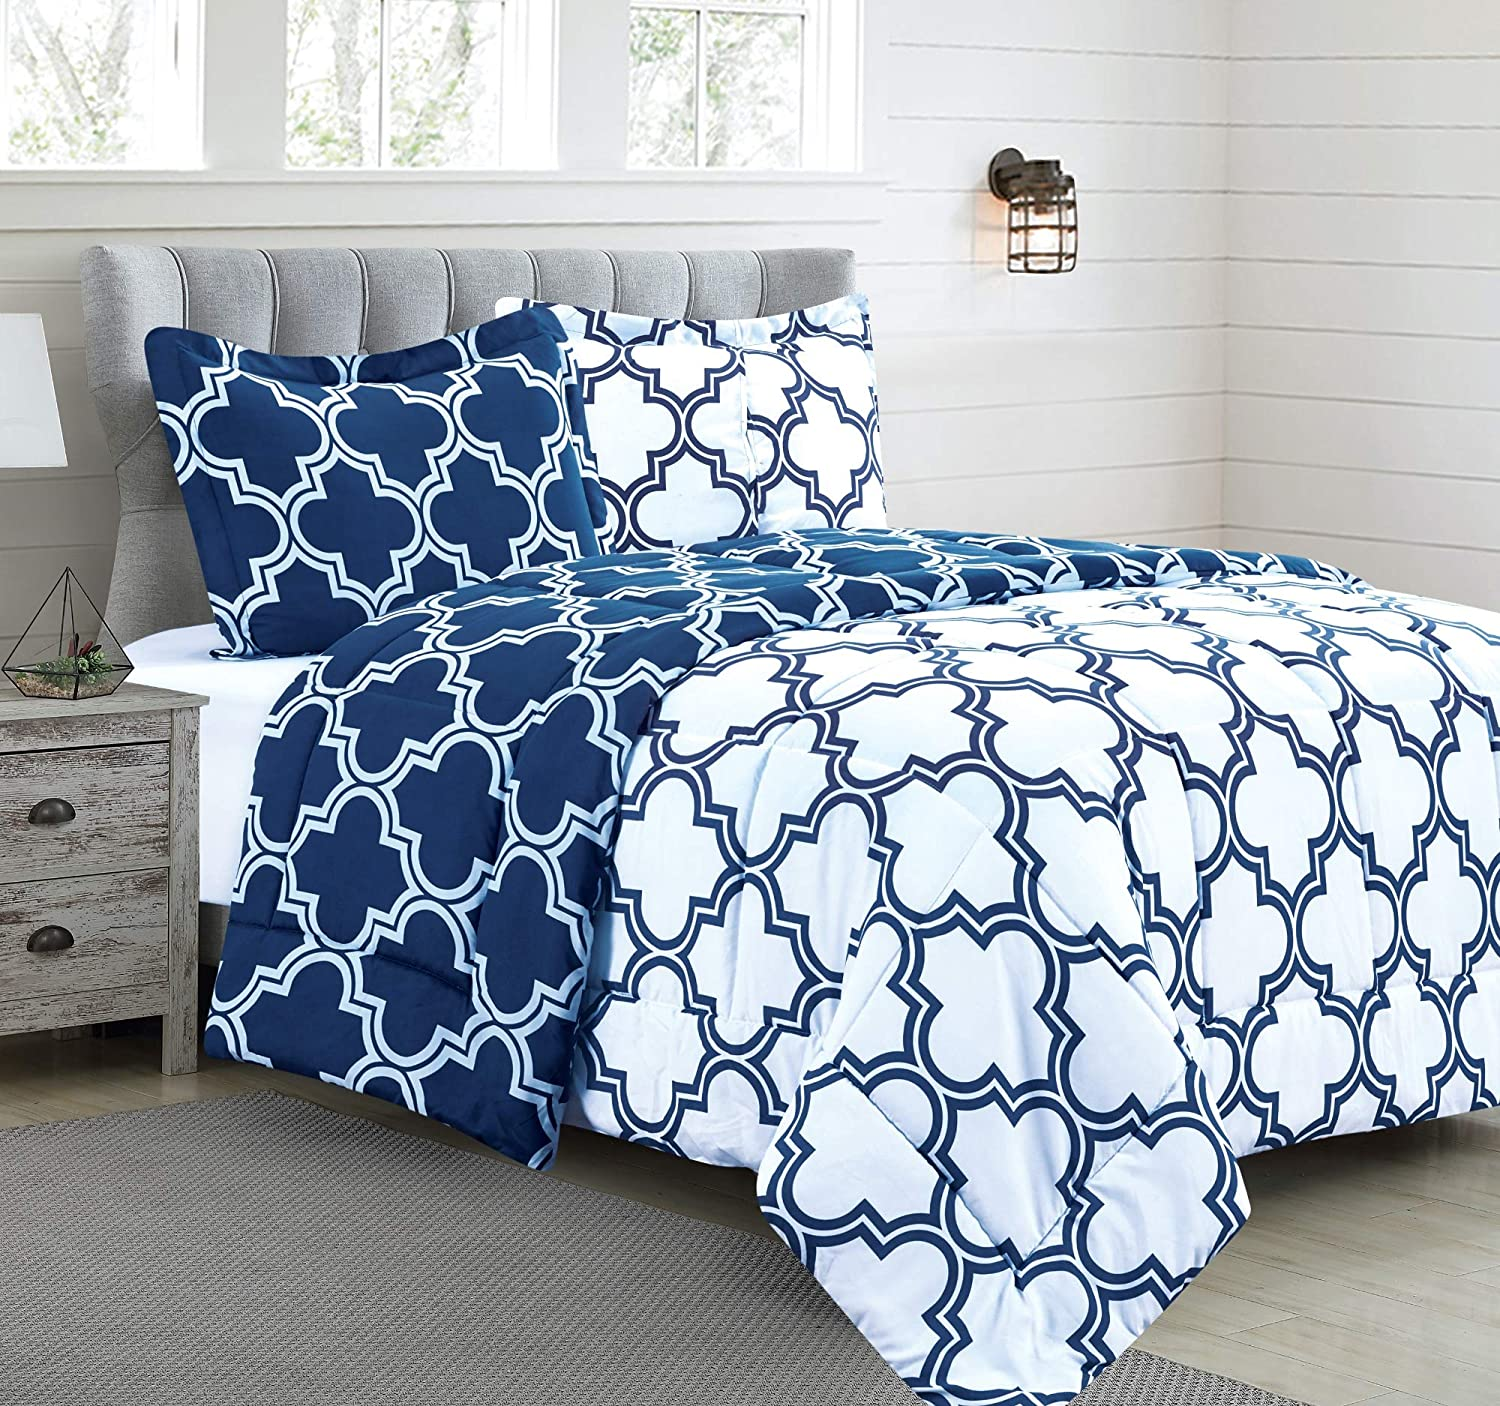 Printed Comforter Set King with 2 Pillow Shams - Luxurious Brushed Microfiber - Goose Down Alternative Comforter - Soft and Comfortable - Machine Washable - Navy-King